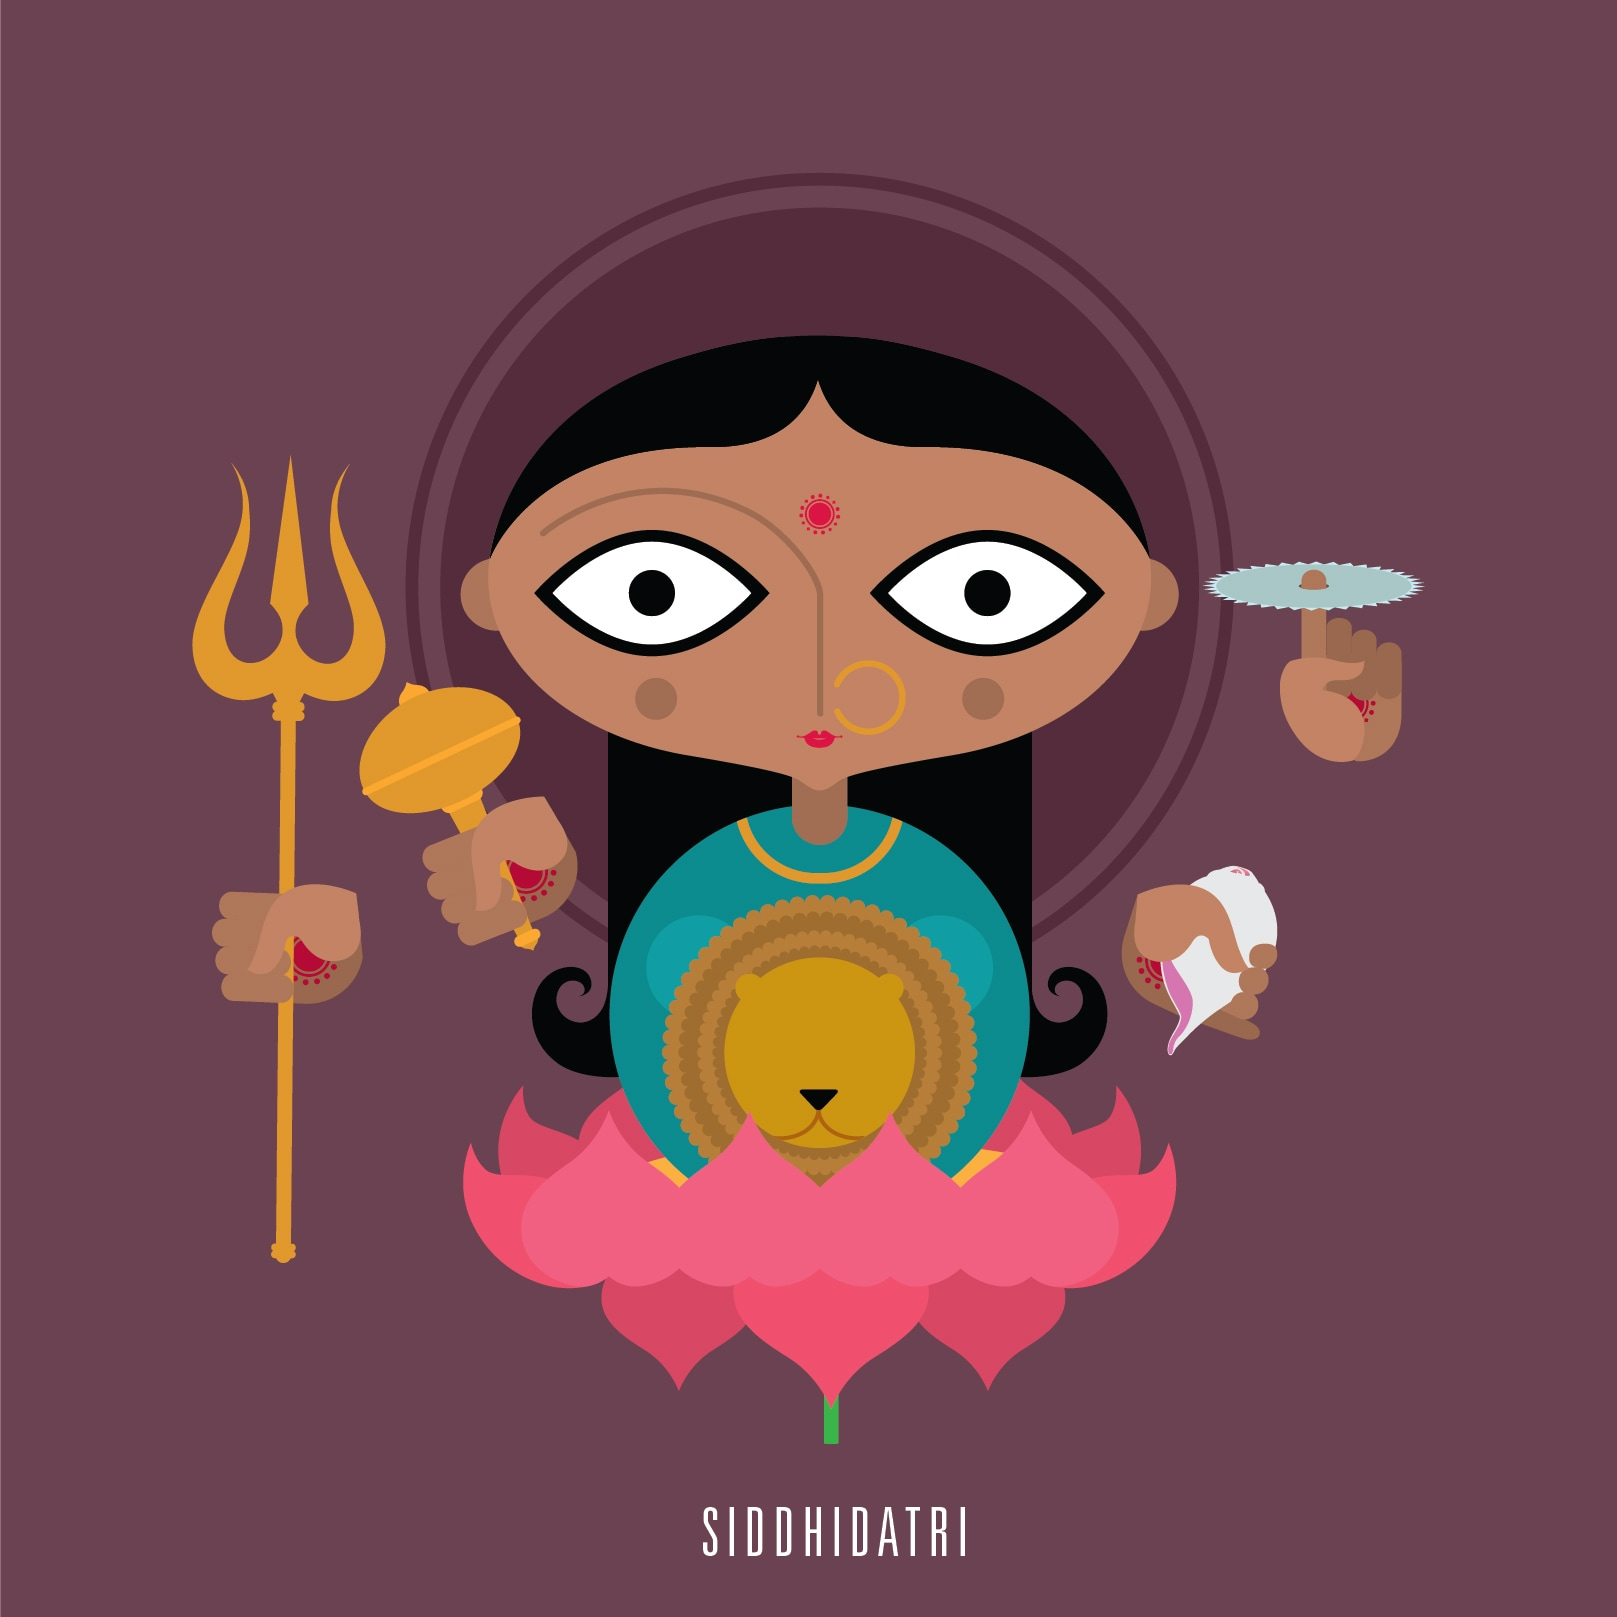 9. The ninth avatar of Goddess Durga has supernatural healing powers. She manifests as the Mother Goddess and blesses all gods, saints, yogis, tantric and devotees.